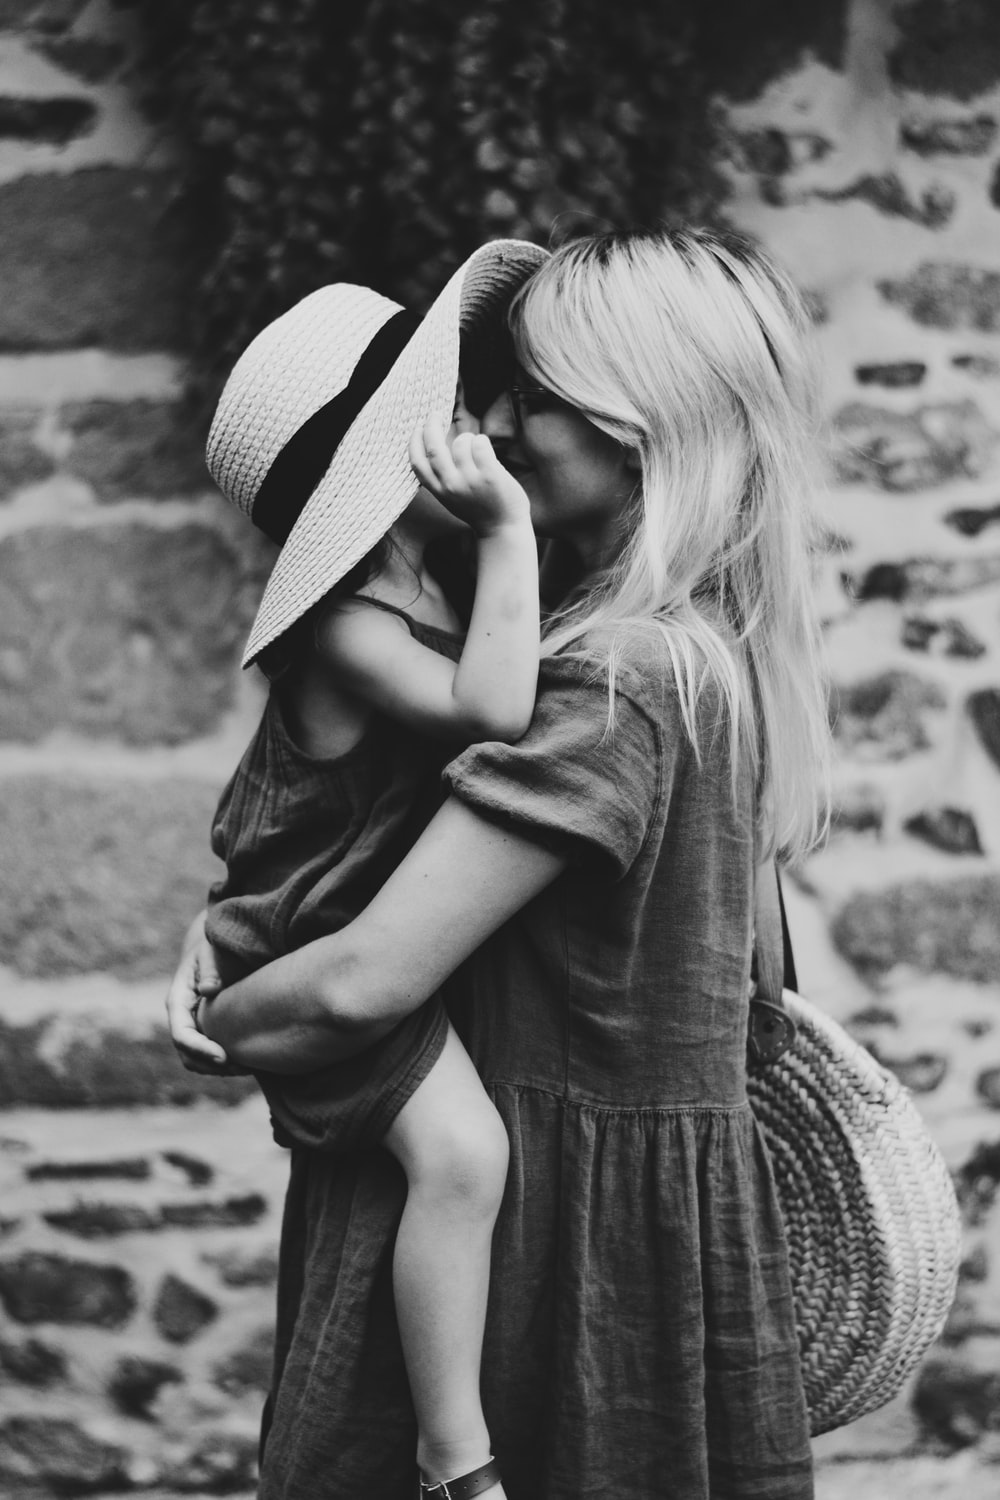 grayscale photography of woman carrying girl